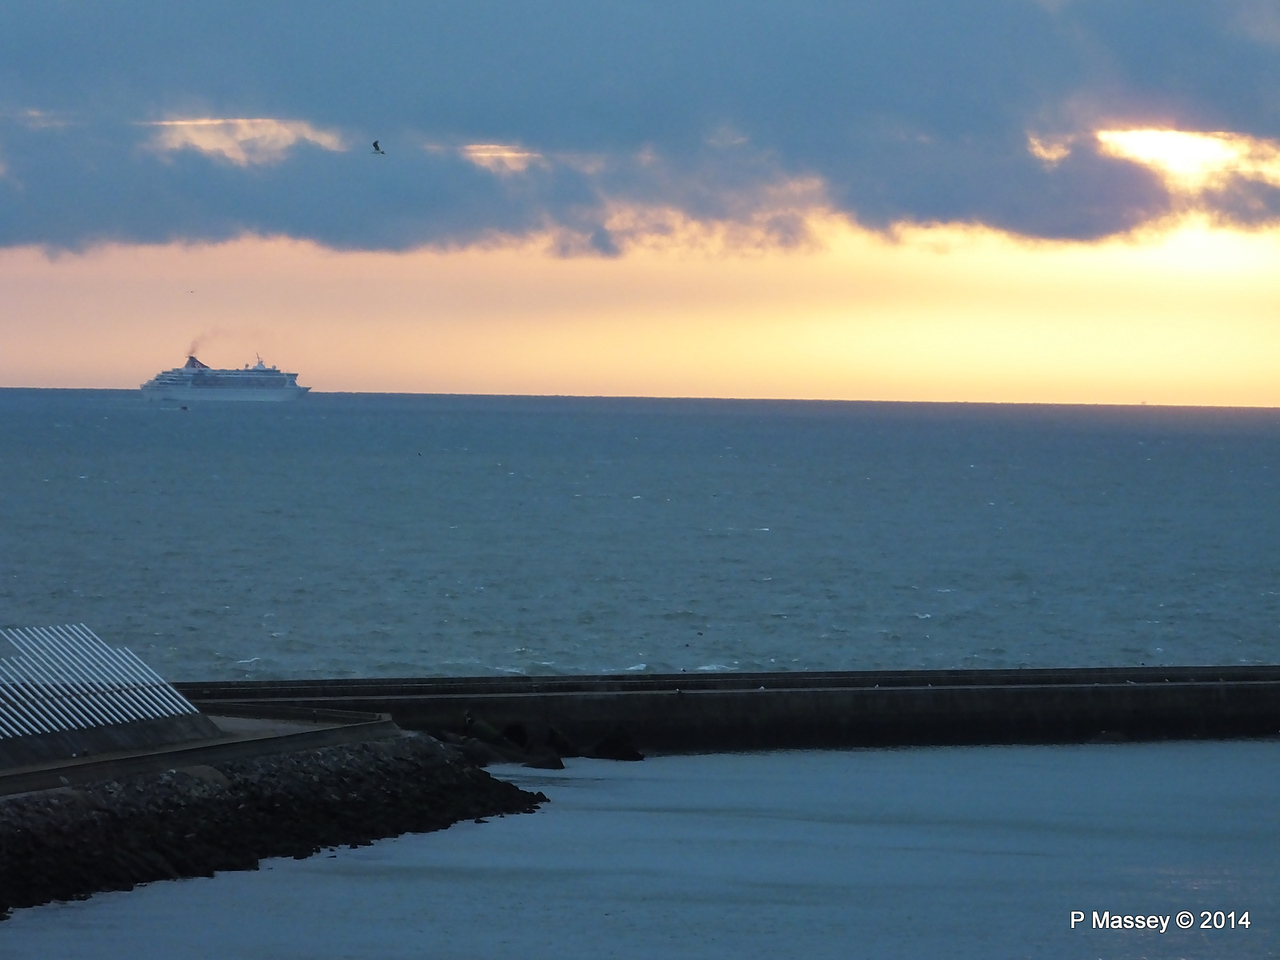 BALMORAL Passing Le Havre from Rouen to La Pallice PDM 06-10-2014 18-16-36